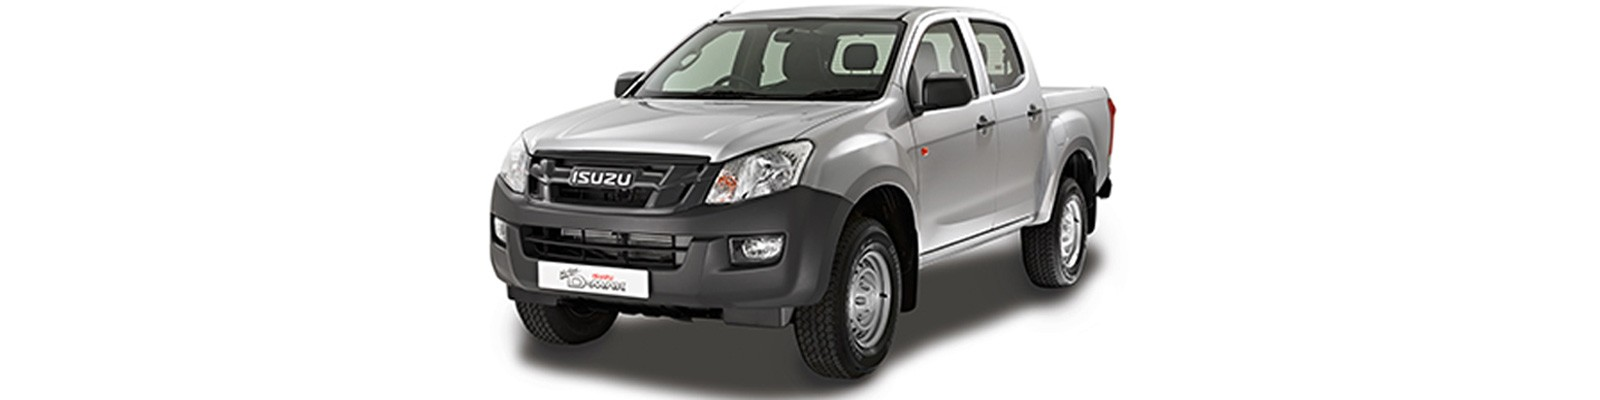 Accessories For Isuzu D-Max Double Cab 2012 On